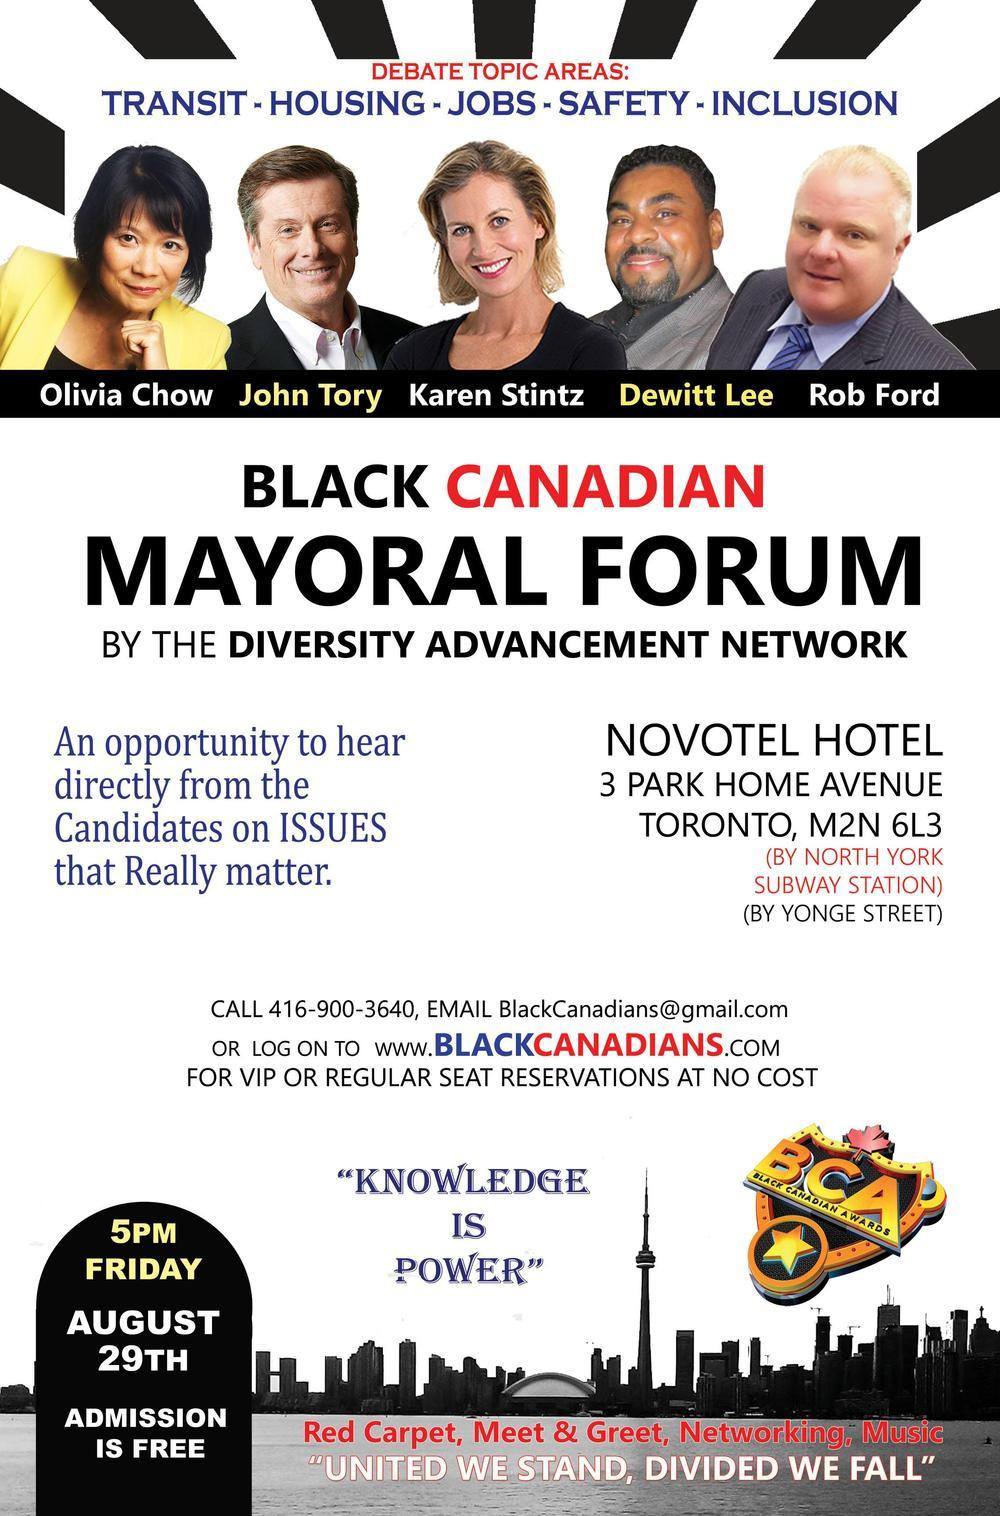 Black Canadian Mayoral Forum